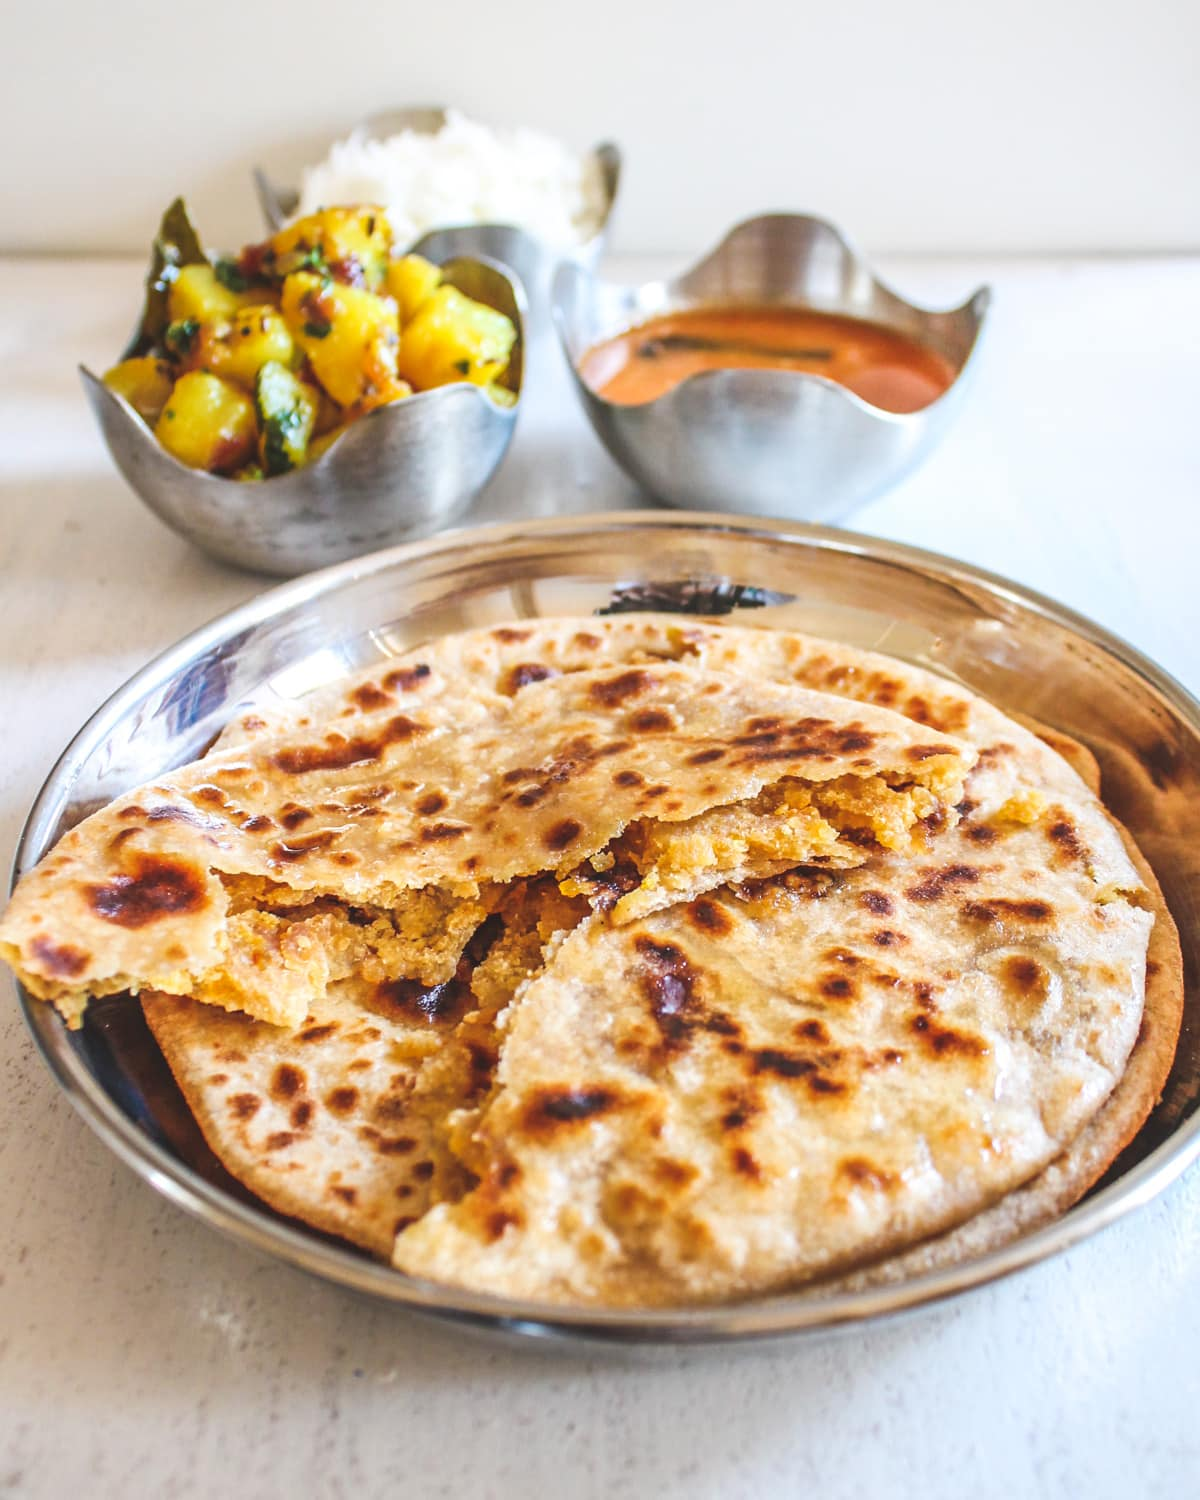 Image of puran poli cut into half to show inside stuffing. Bowls of bhaji, amti and rice on back